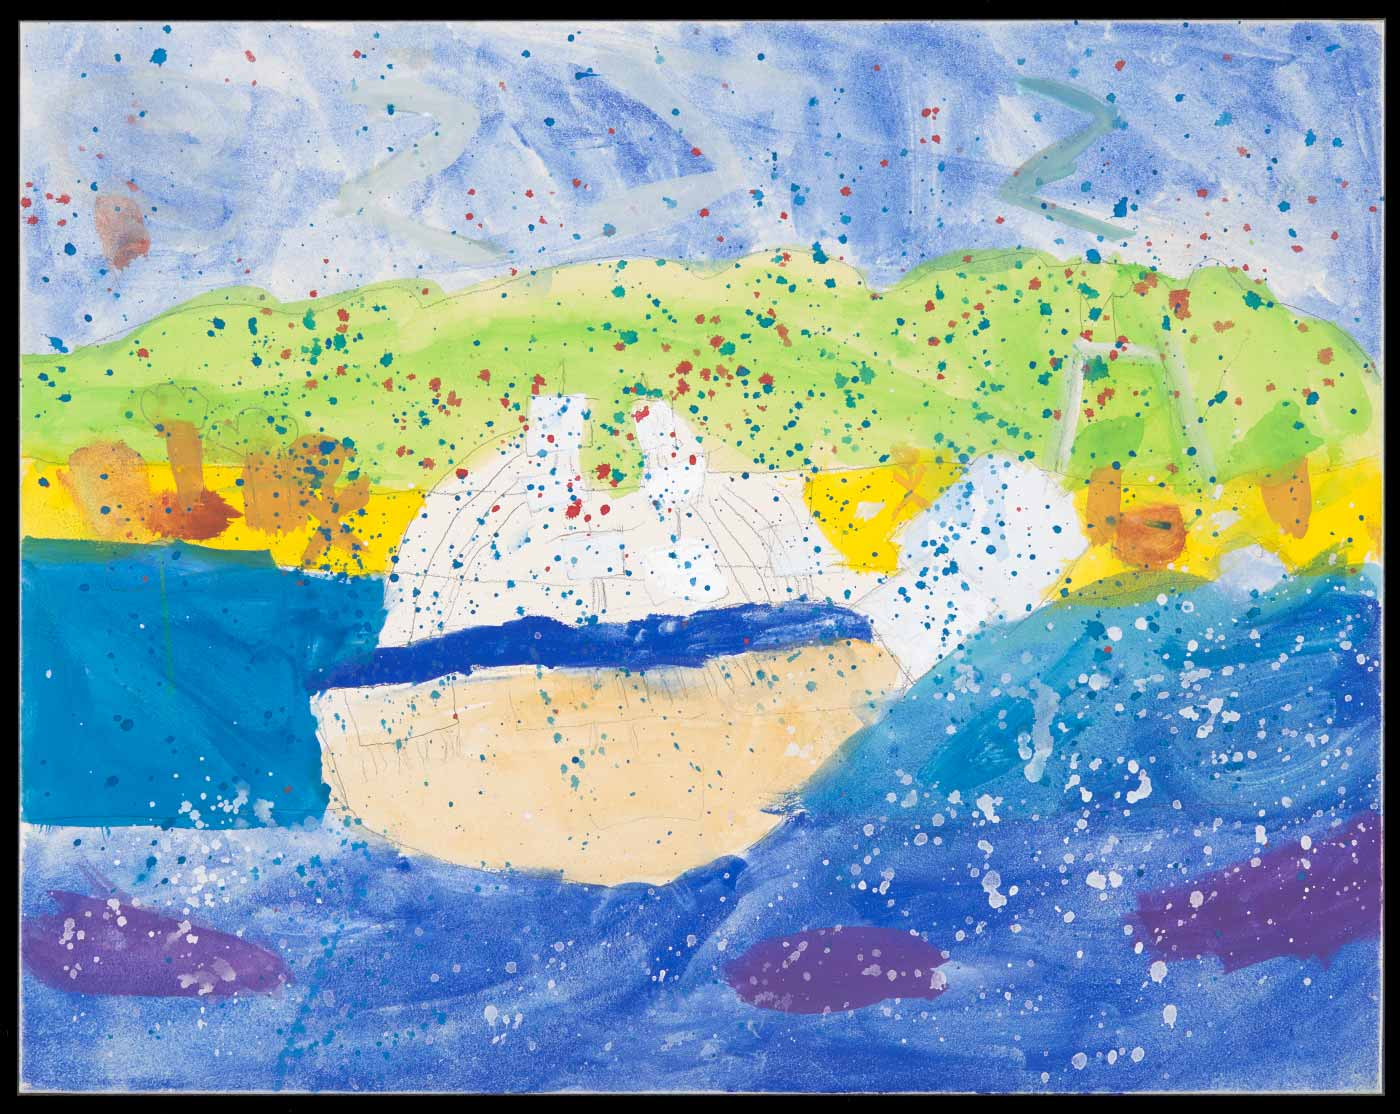 Painting on aquabord, depicting a ship on blue water with green hills and blue sky in the background. Overlaid with red, blue, and white splatters. - click to view larger image